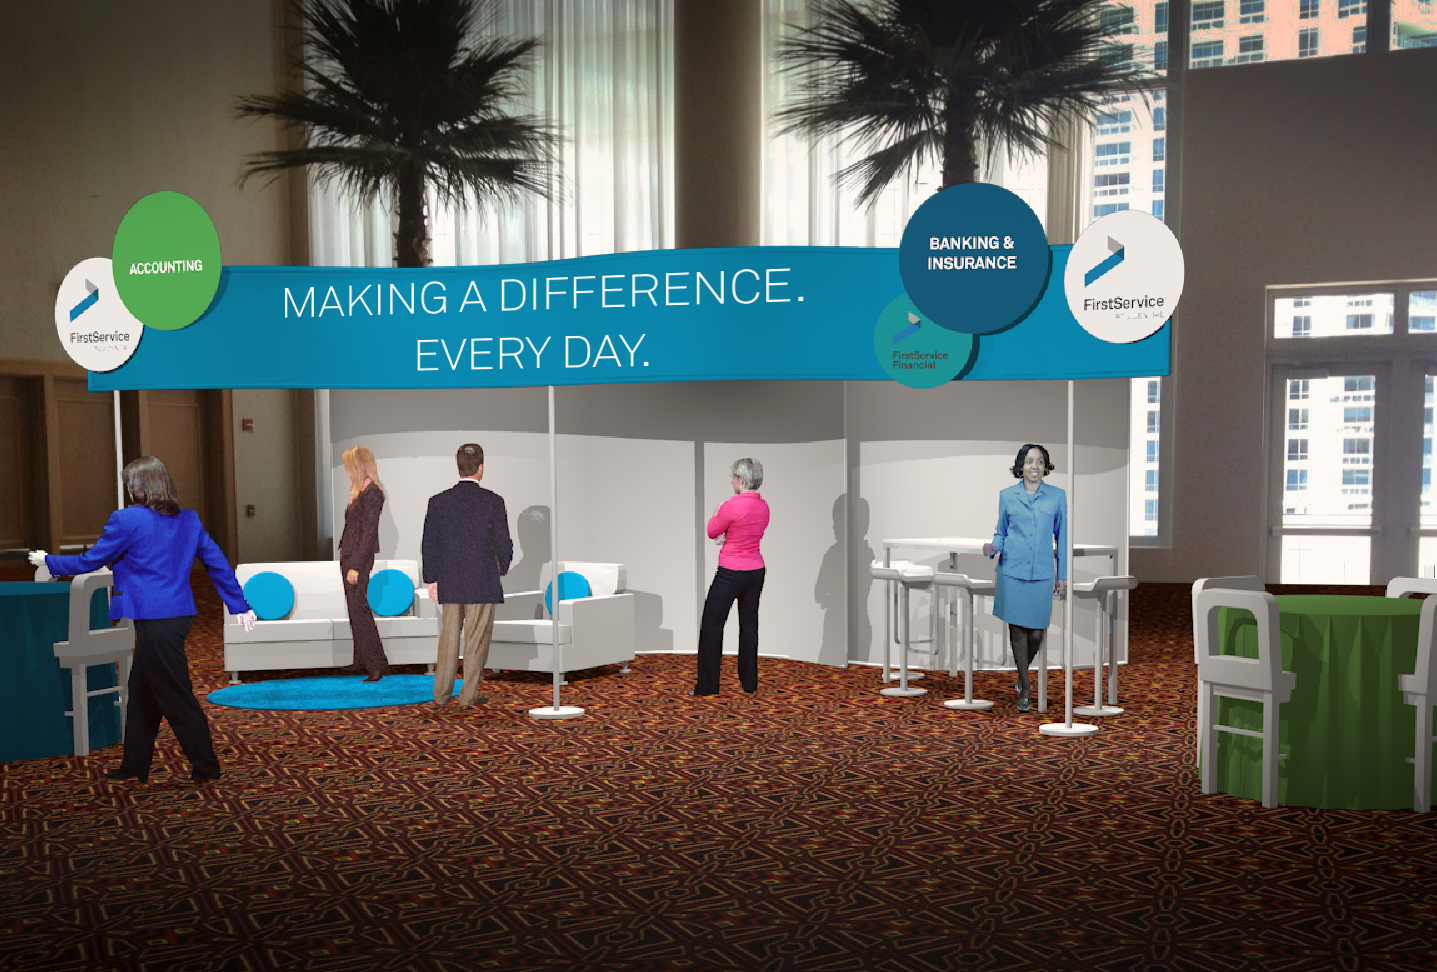 First Service Residential Booth and lounge_rendering.jpg